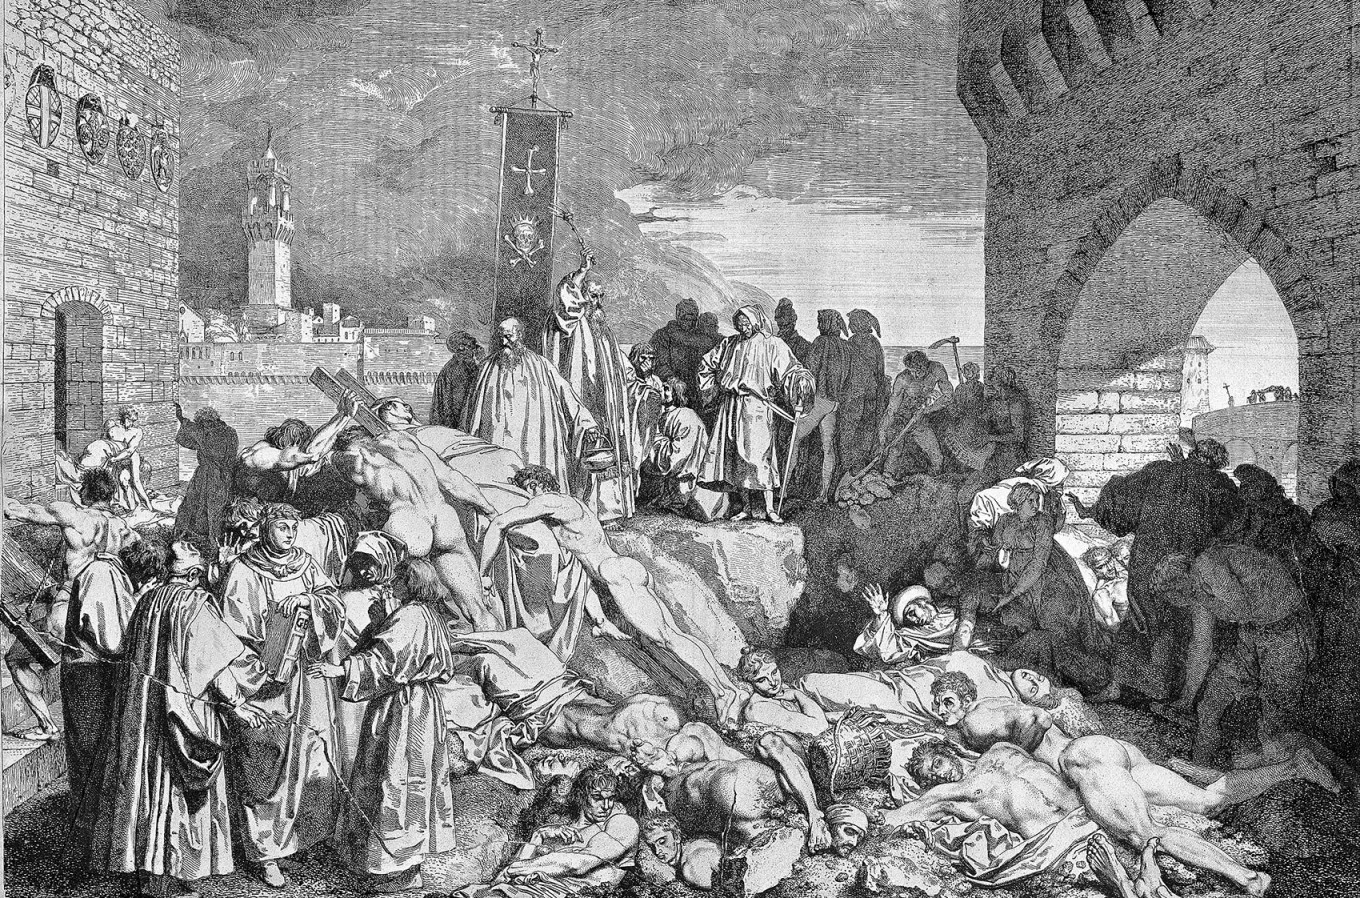 2897px-The_plague_of_Florence_in_1348_as_described_in_Boccaccios_Wellcome_L0004057